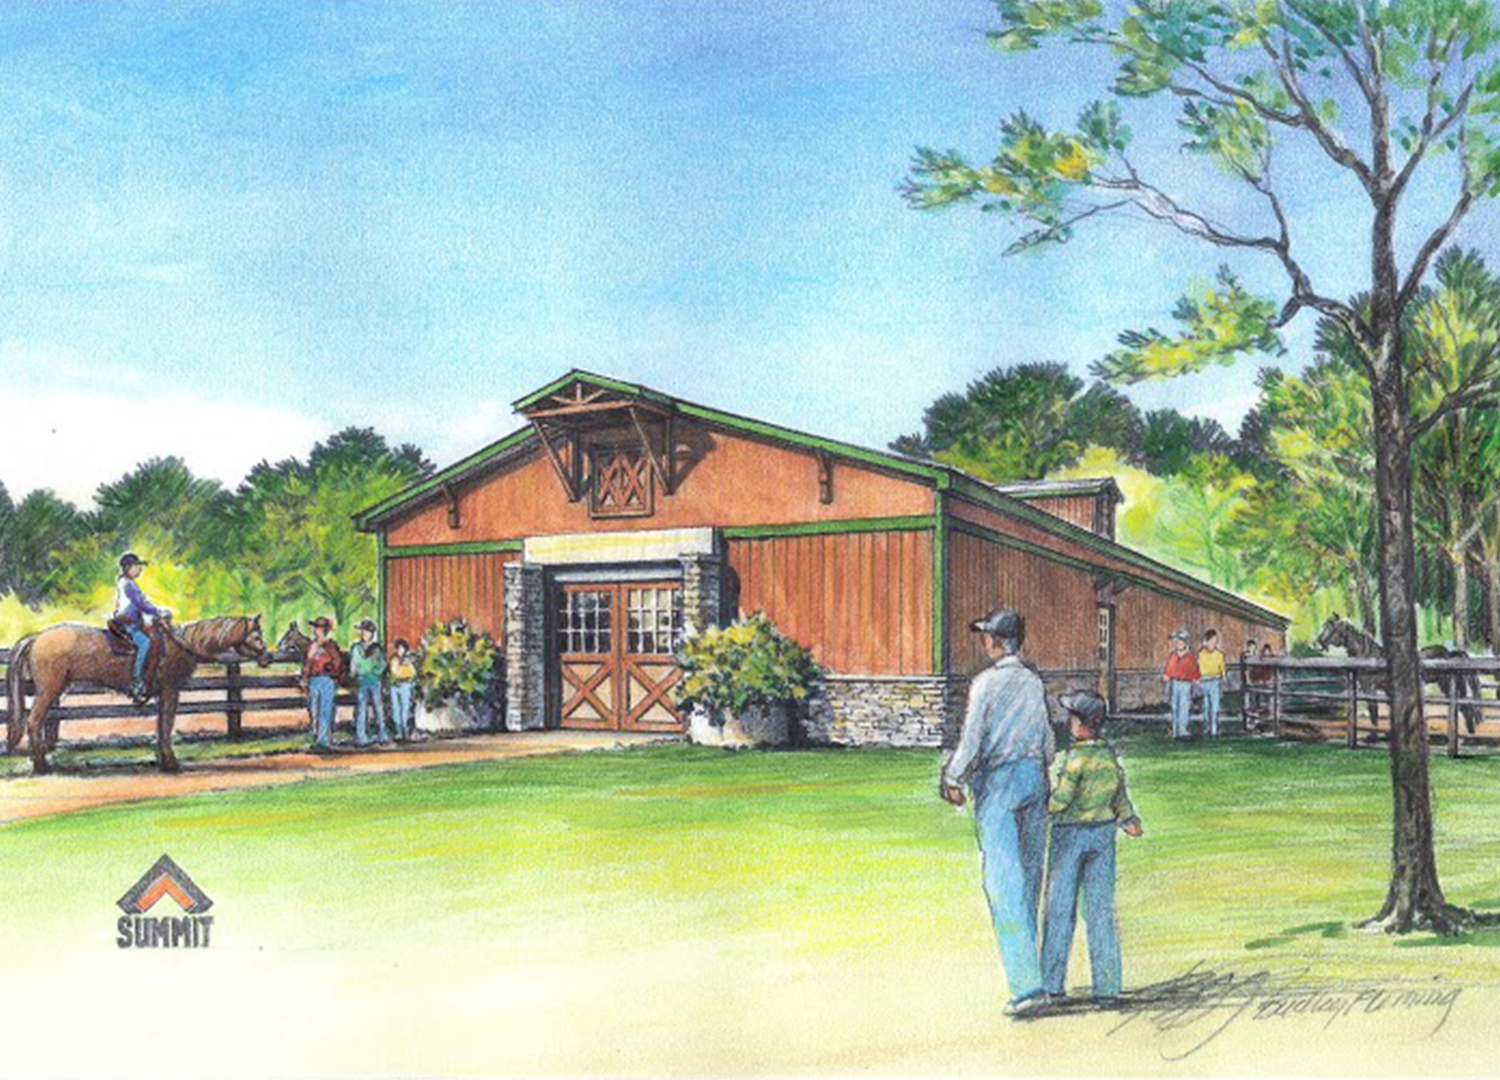 Summit_Horse_Stables_02